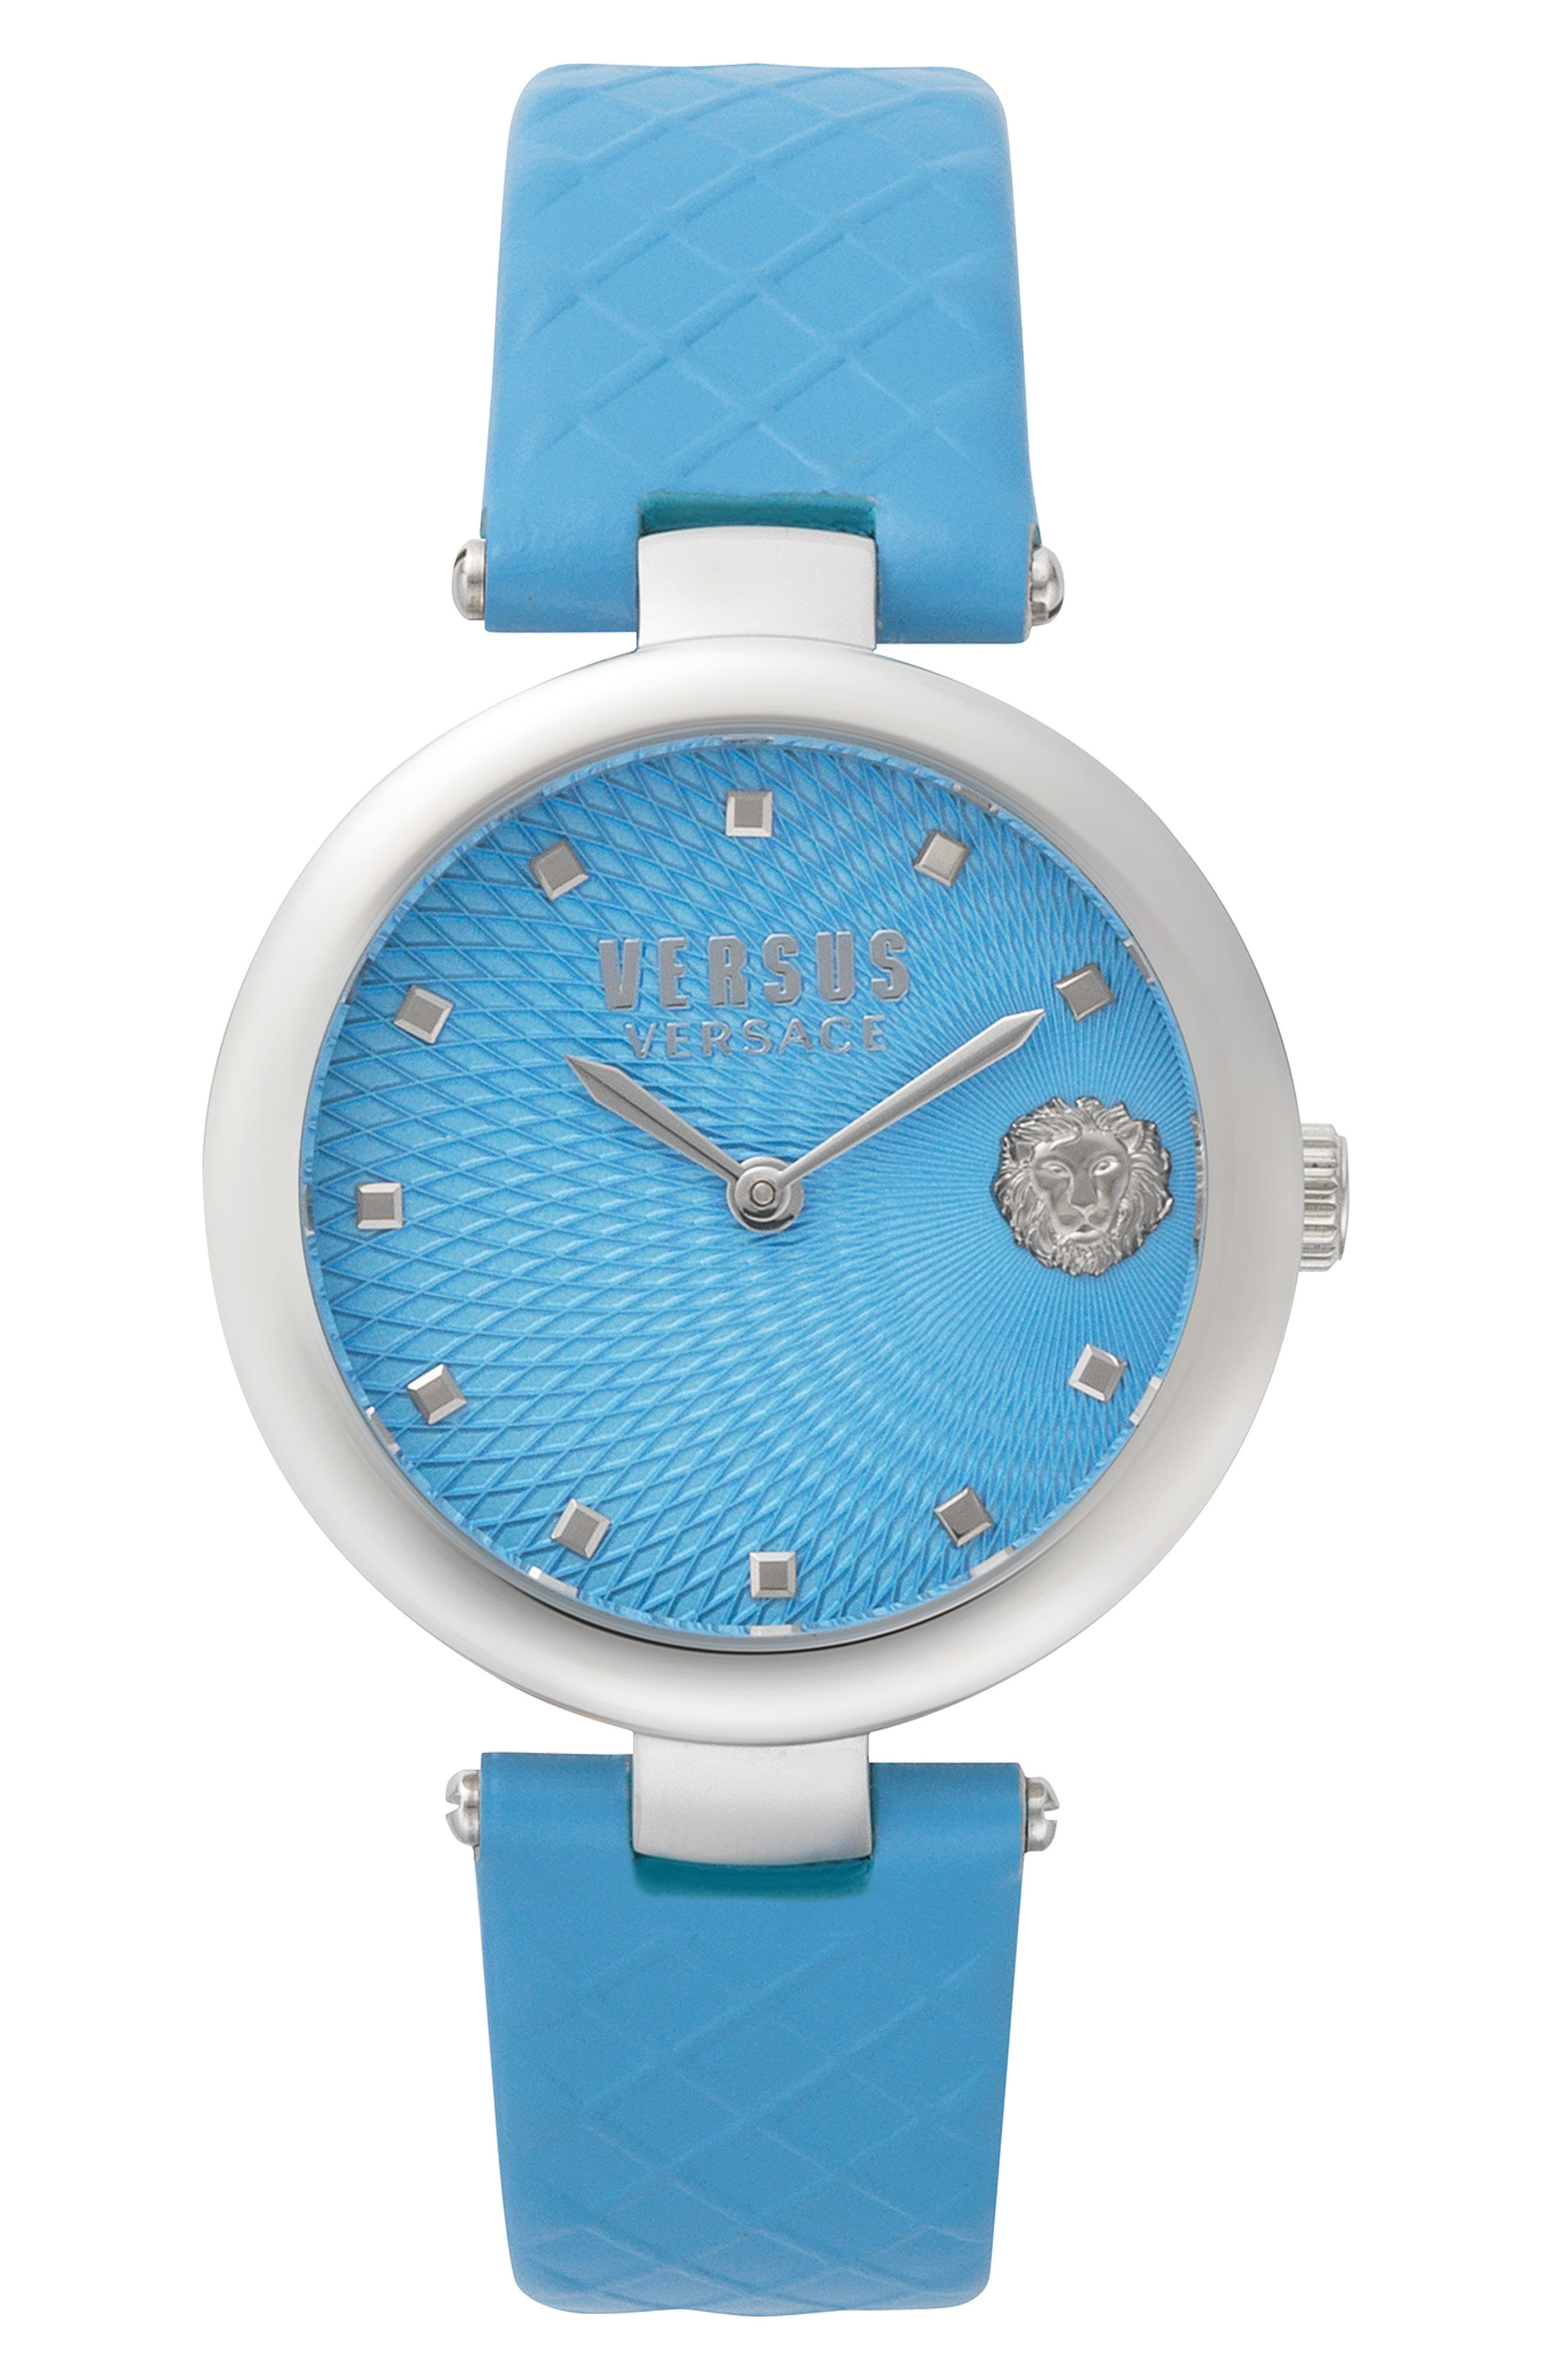 VERSUS VERSACE Buffle Bay Leather Strap Watch, 36mm, Main, color, BLUE/ SILVER